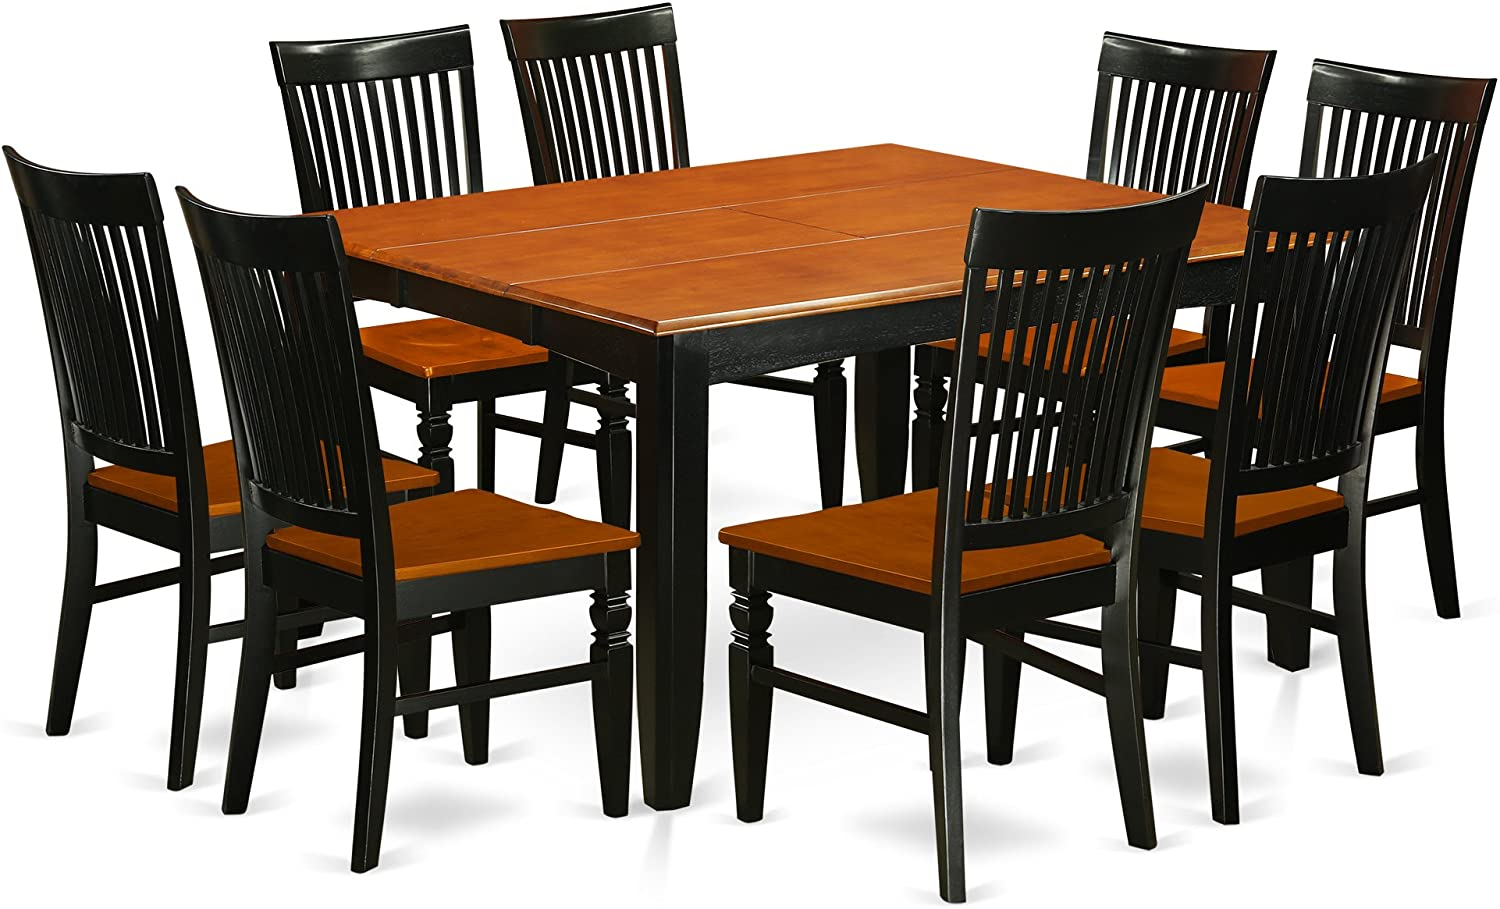 Buy 9 Pc Kitchen table set with a Dining Table and 9 Wood Seat ...